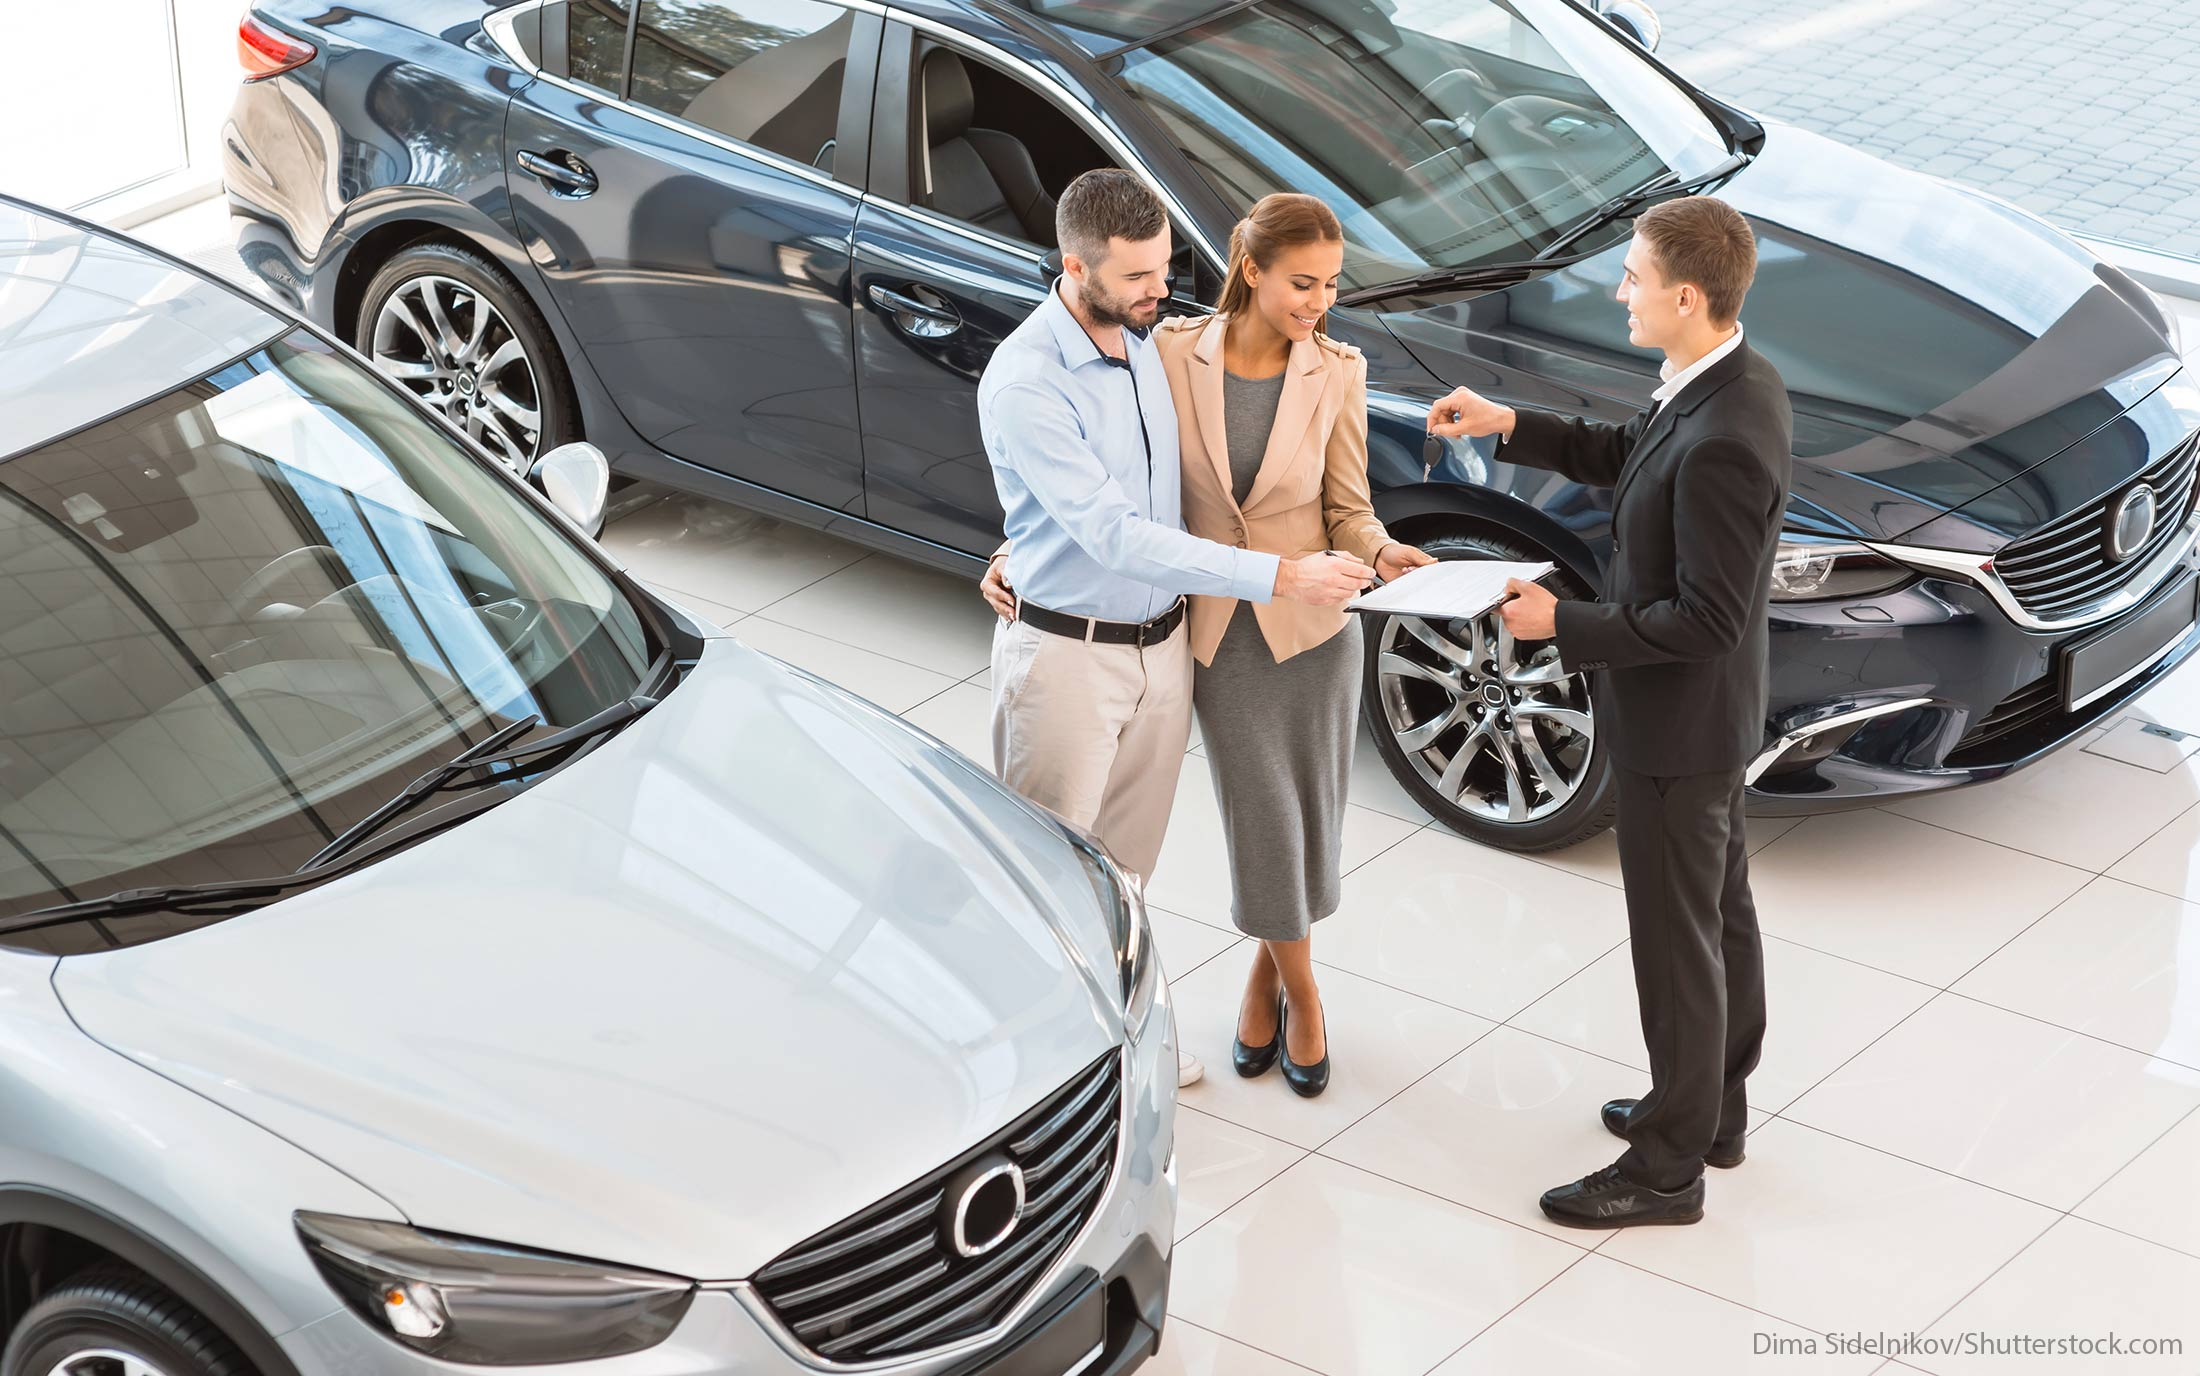 New Cars To Buy The Best And The Worst Time Of The Year To Buy A New Car